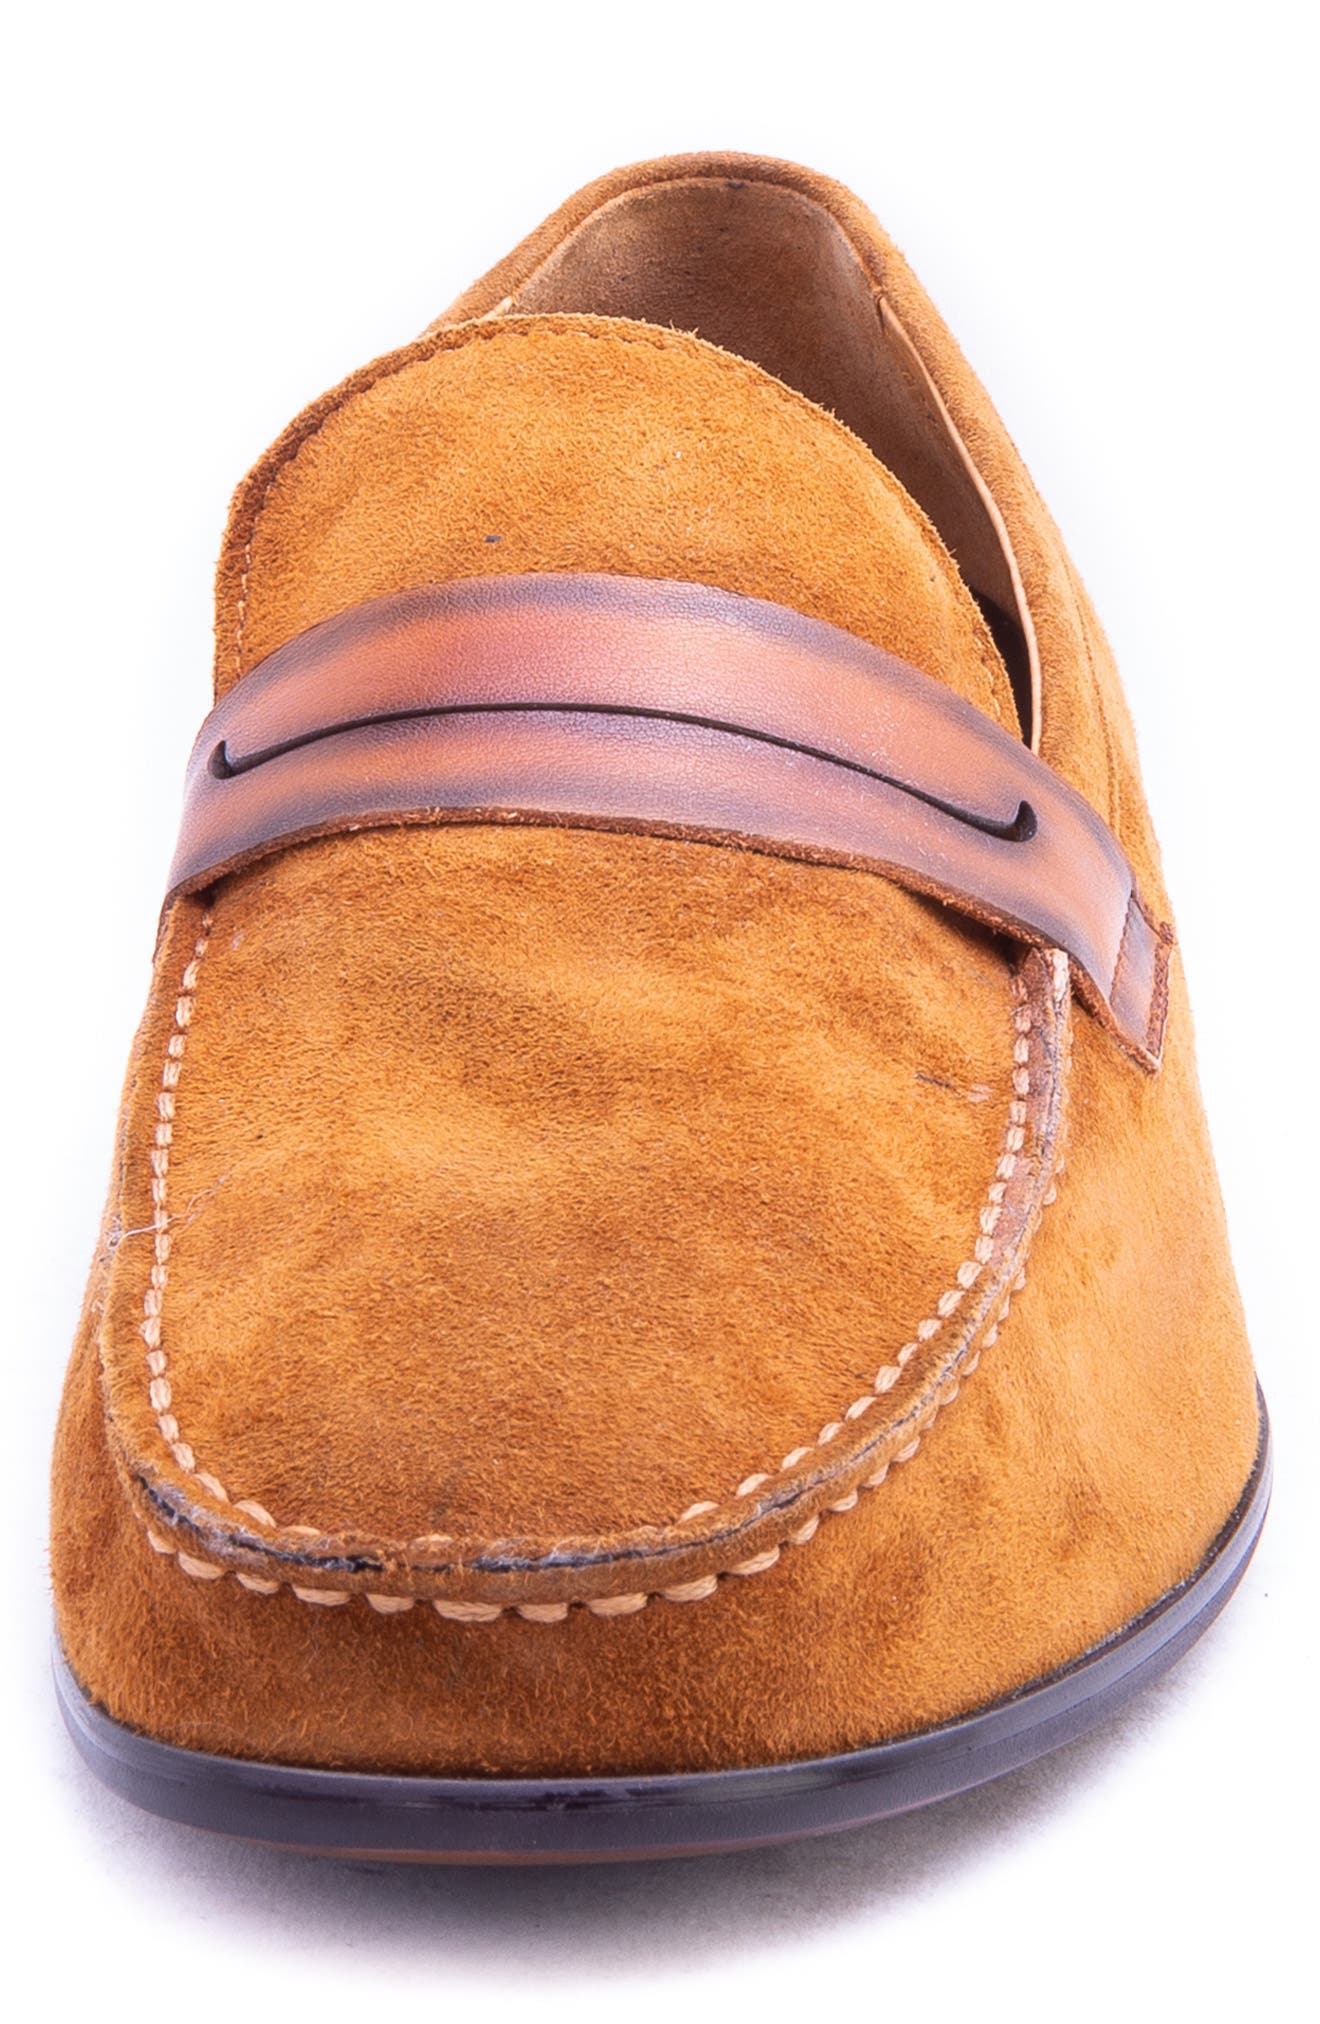 Opie Penny Loafer,                             Alternate thumbnail 4, color,                             COGNAC SUEDE/ LEATHER